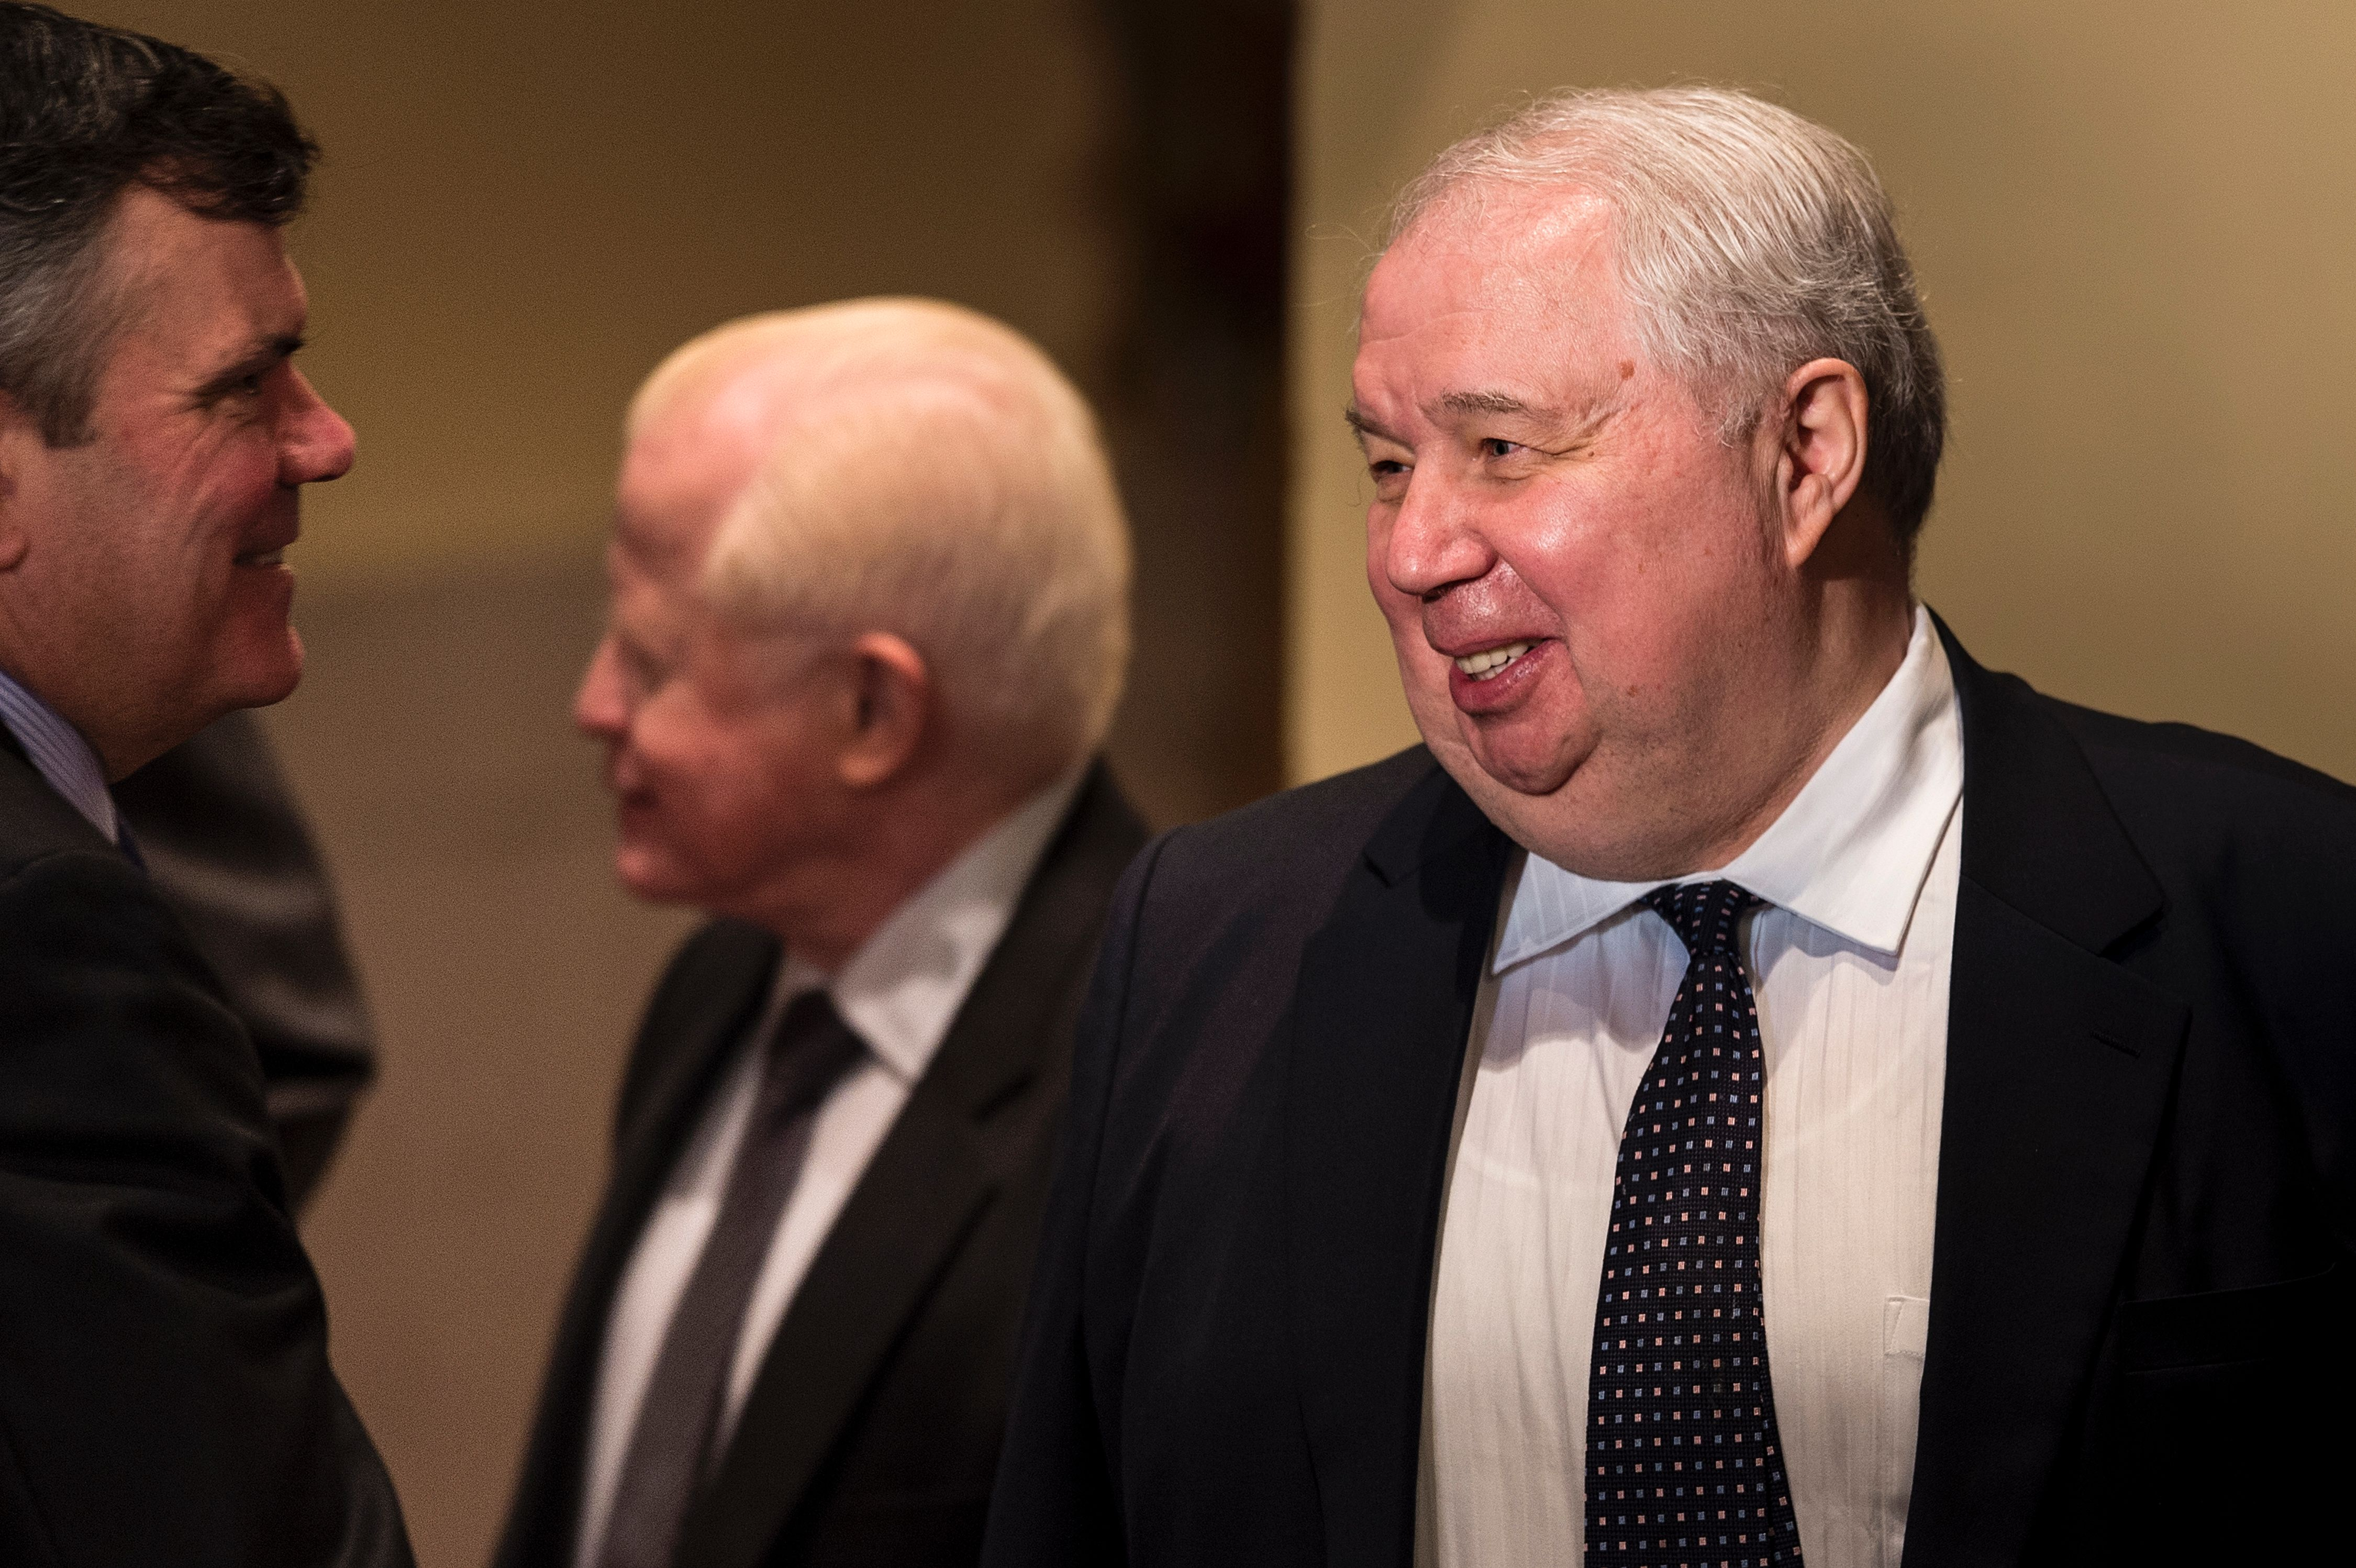 Russian Ambassador Sergey Kislyak (R) speaks with others after a foreign policy speech by President Donald Trump at the Mayflower Hotel on April 27, 2016. (Brendan Smialowski/AFP/Getty Images)